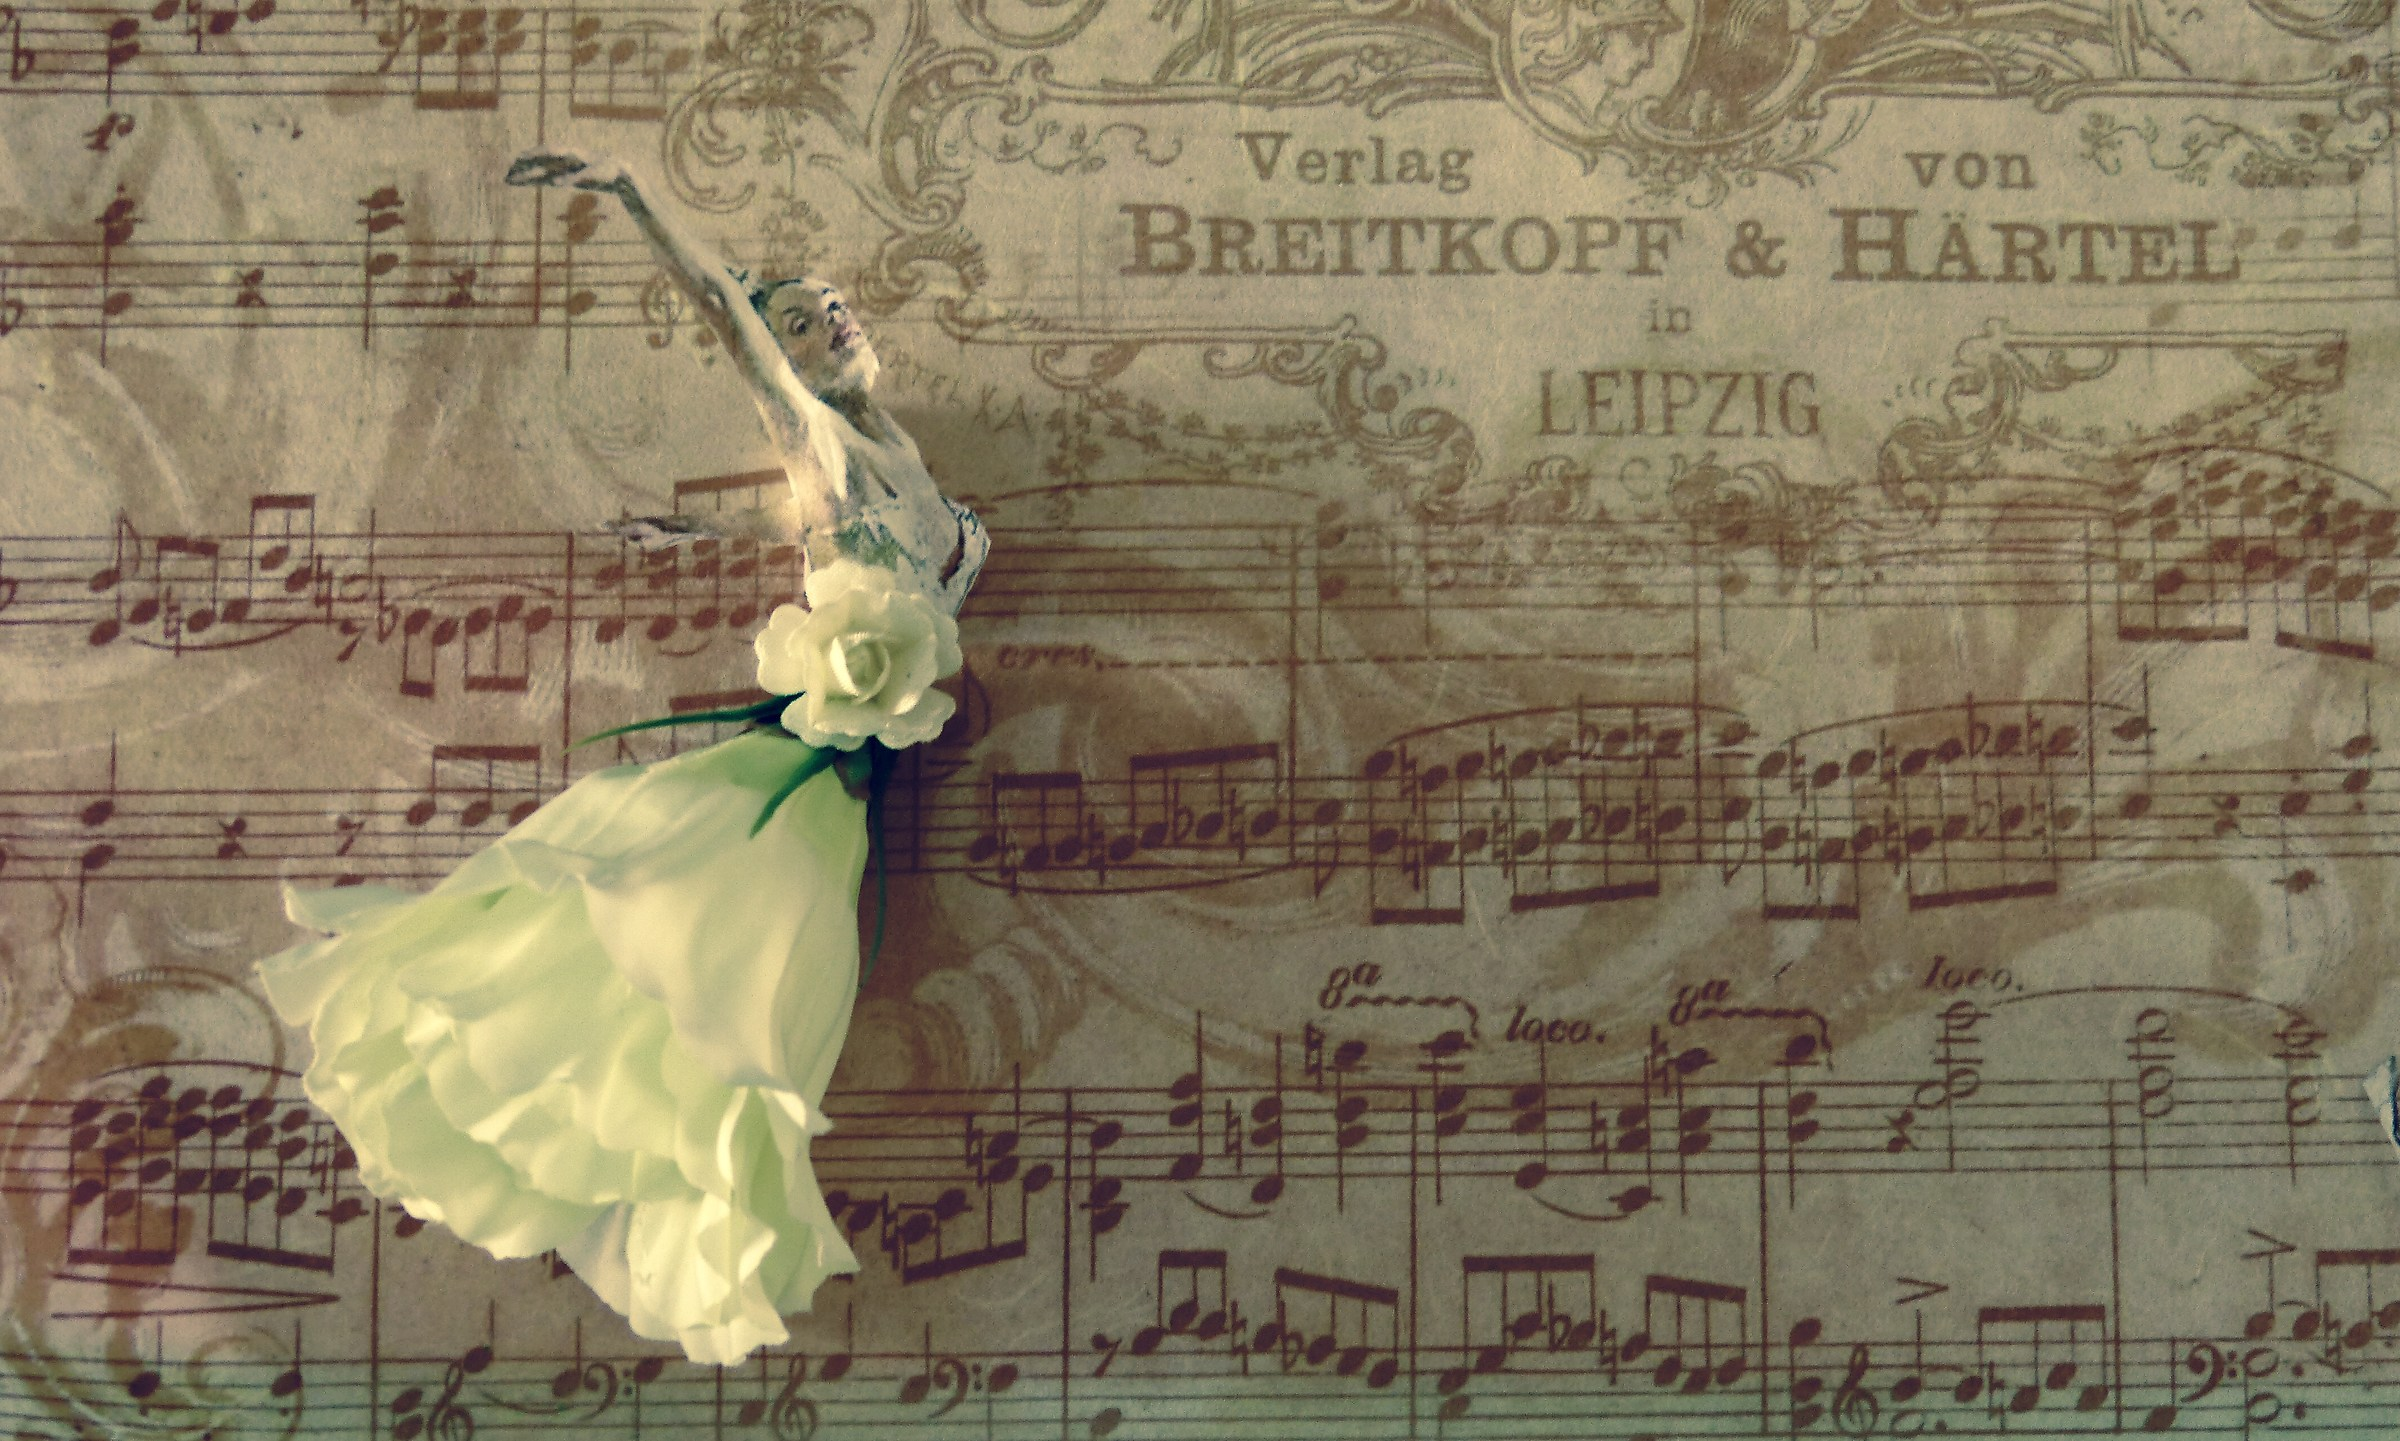 Dancing on notes...